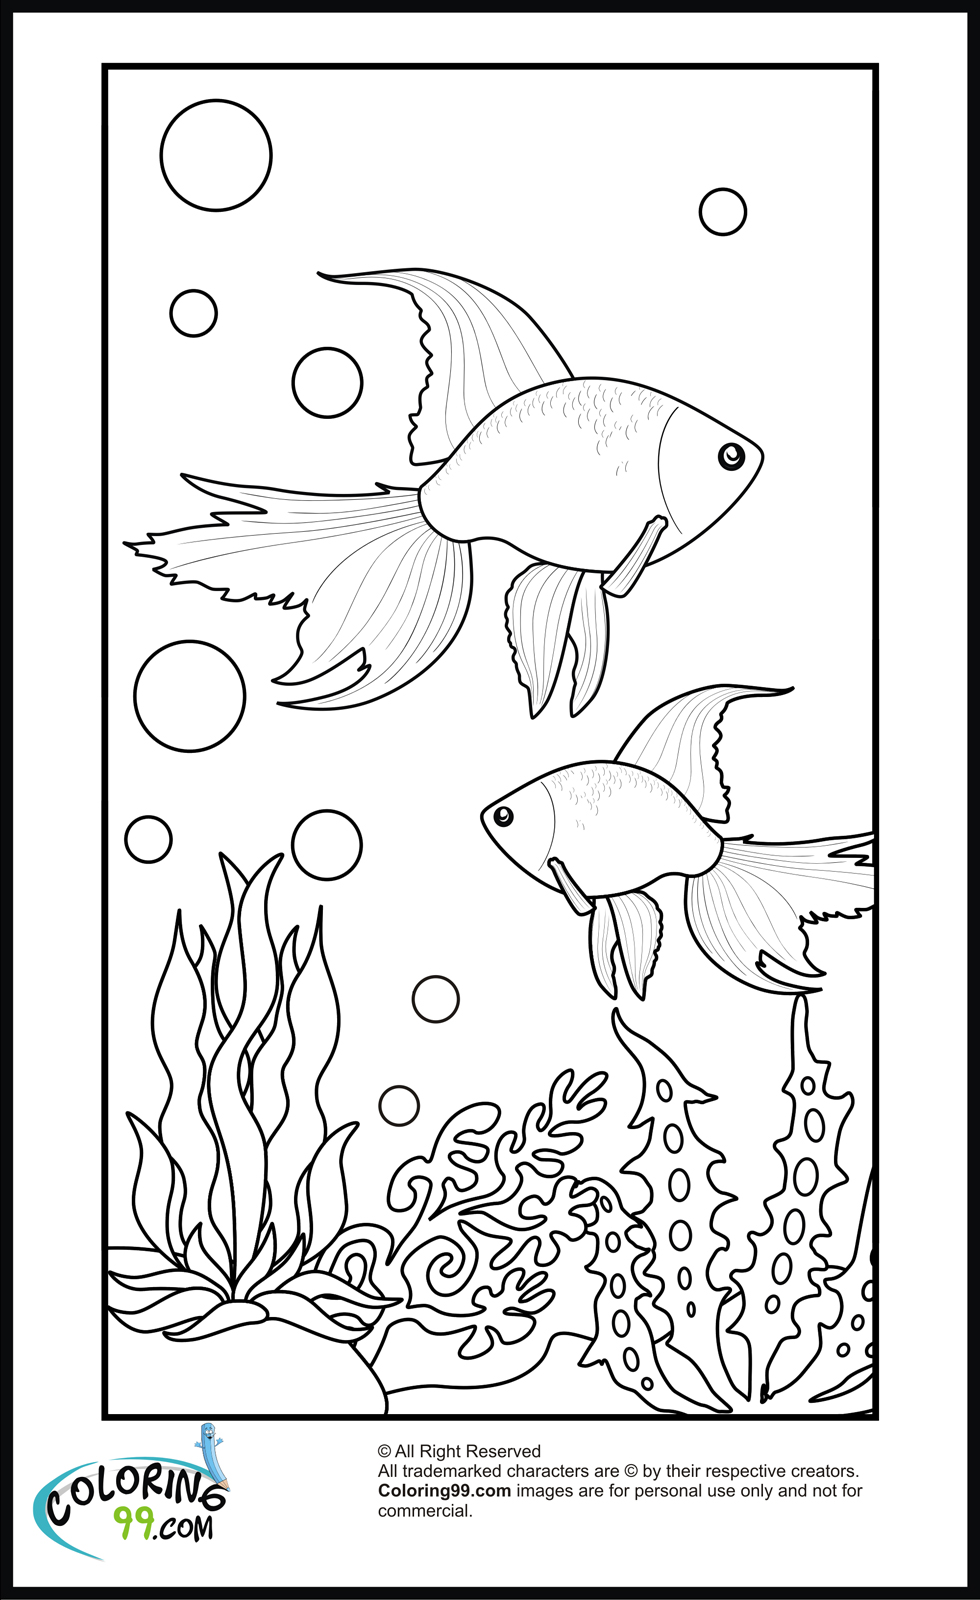 goldfish coloring goldfish coloring pages download and print goldfish goldfish coloring 1 2